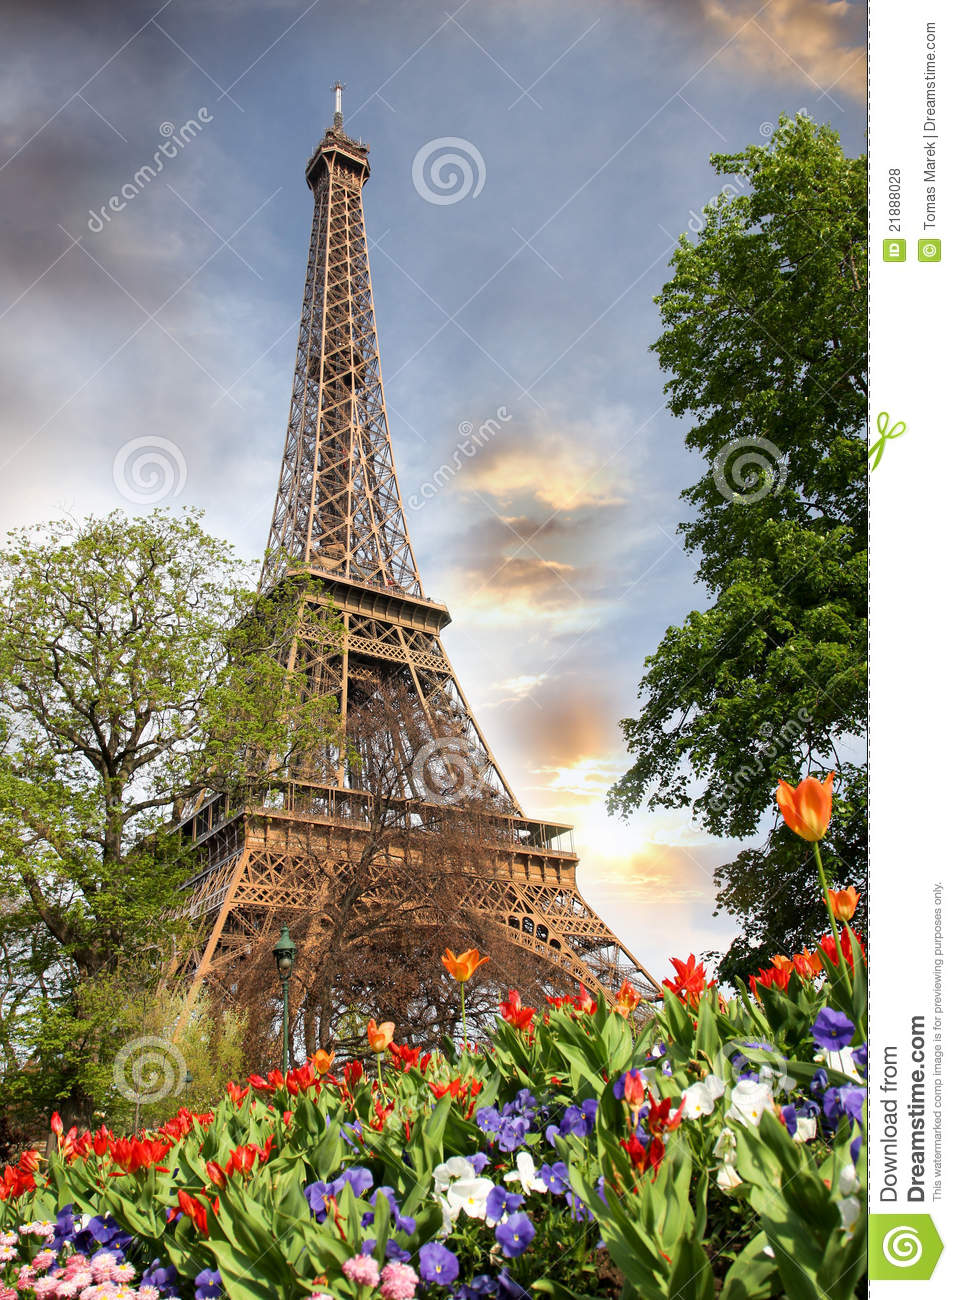 Rain Fall Hd Wallpaper Download Eiffel Tower In Spring Time Paris France Royalty Free